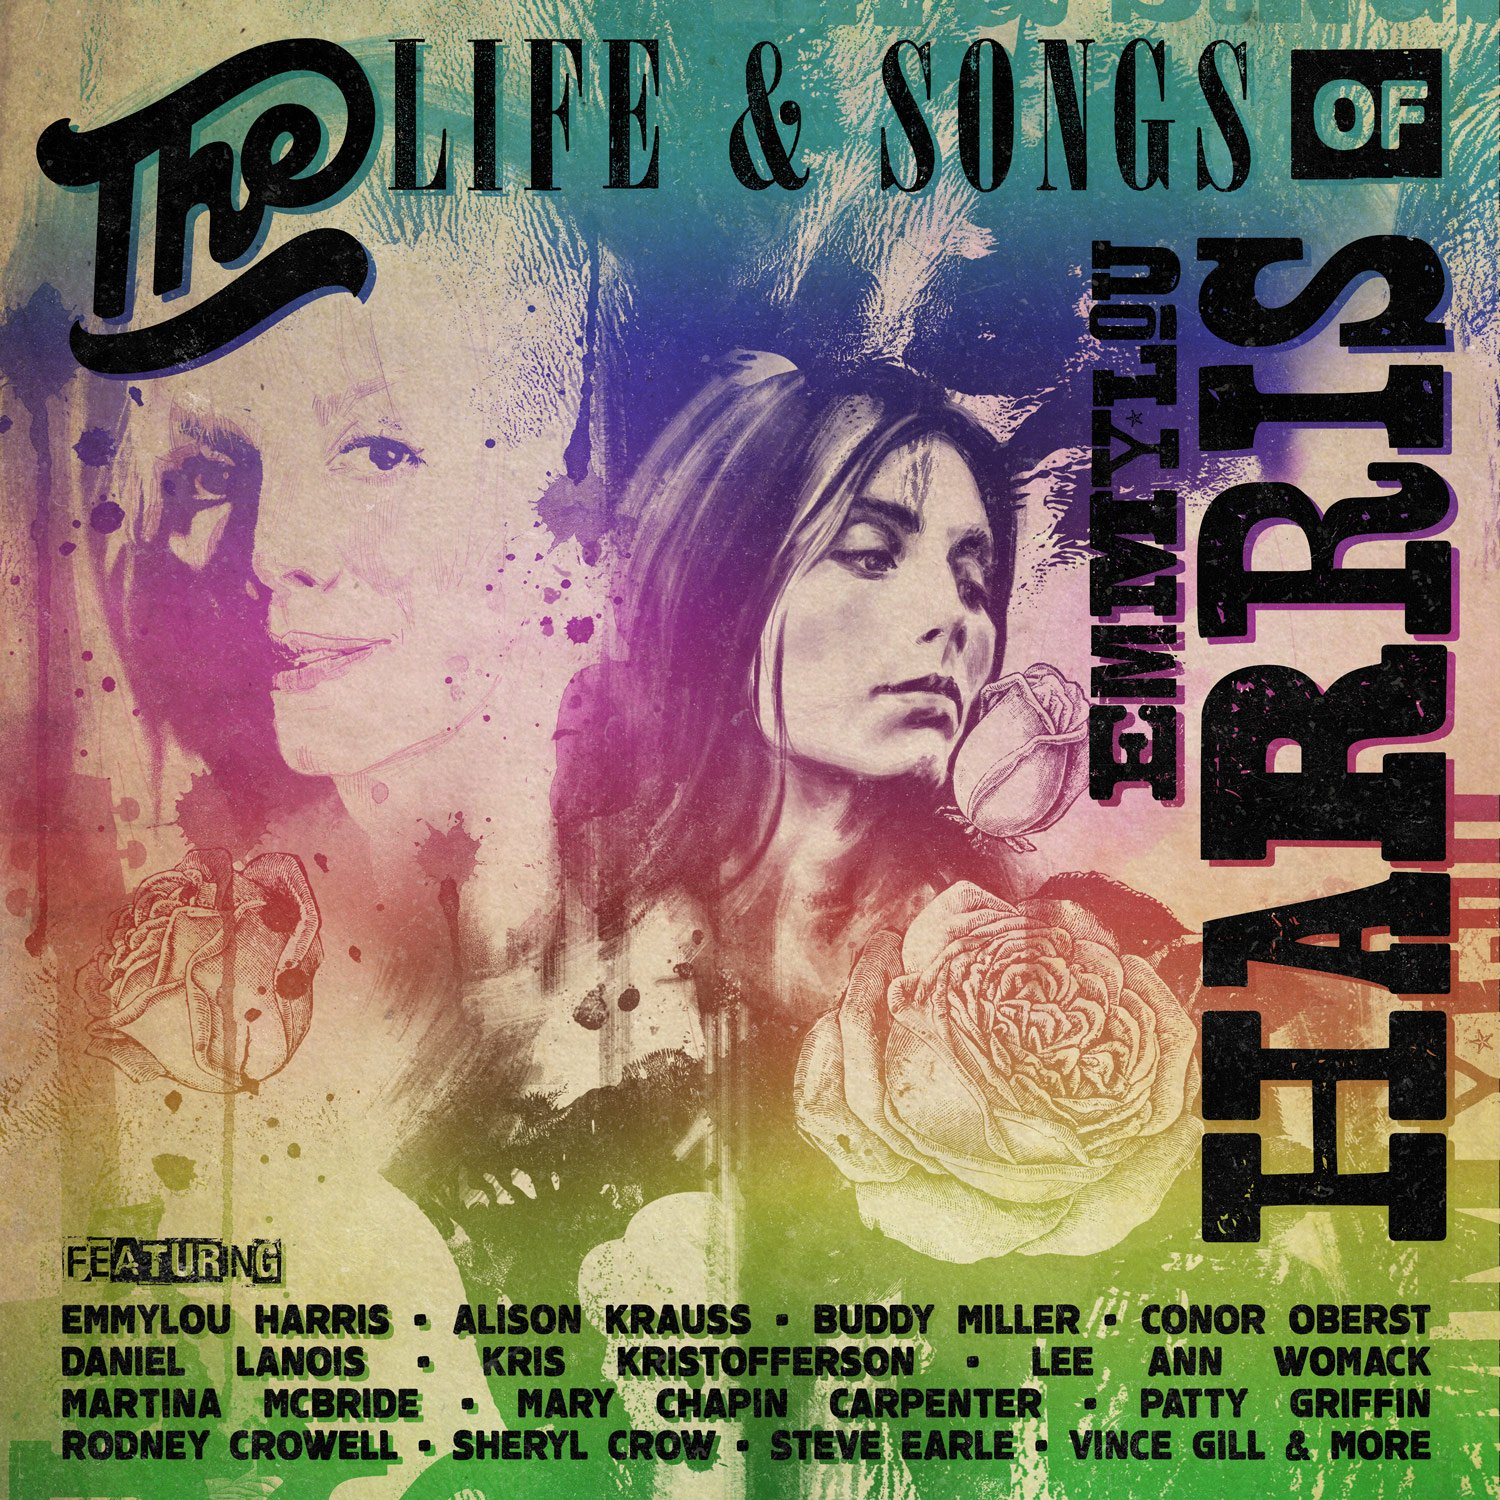 Blu-ray : Emmylou Harris - The Life & Songs Of Emmylou Harris: An All-star Concert Celebration (Blu-ray)